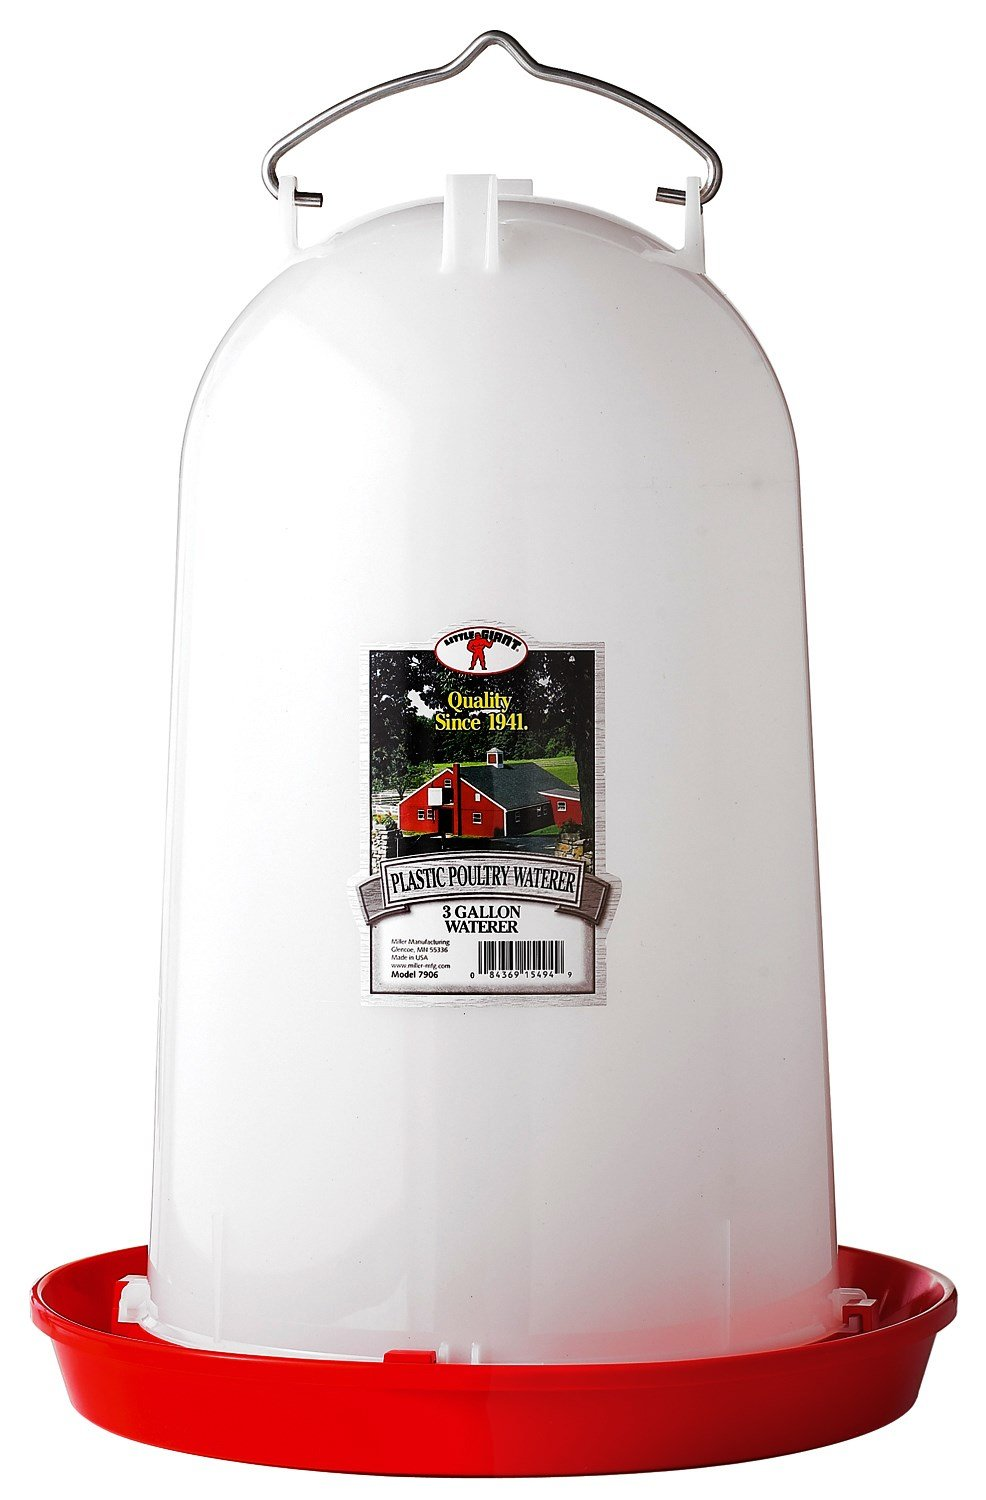 LITTLE GIANT 3 Gallon Poultry Waterer 7906, 3 gal, White by LITTLE GIANT